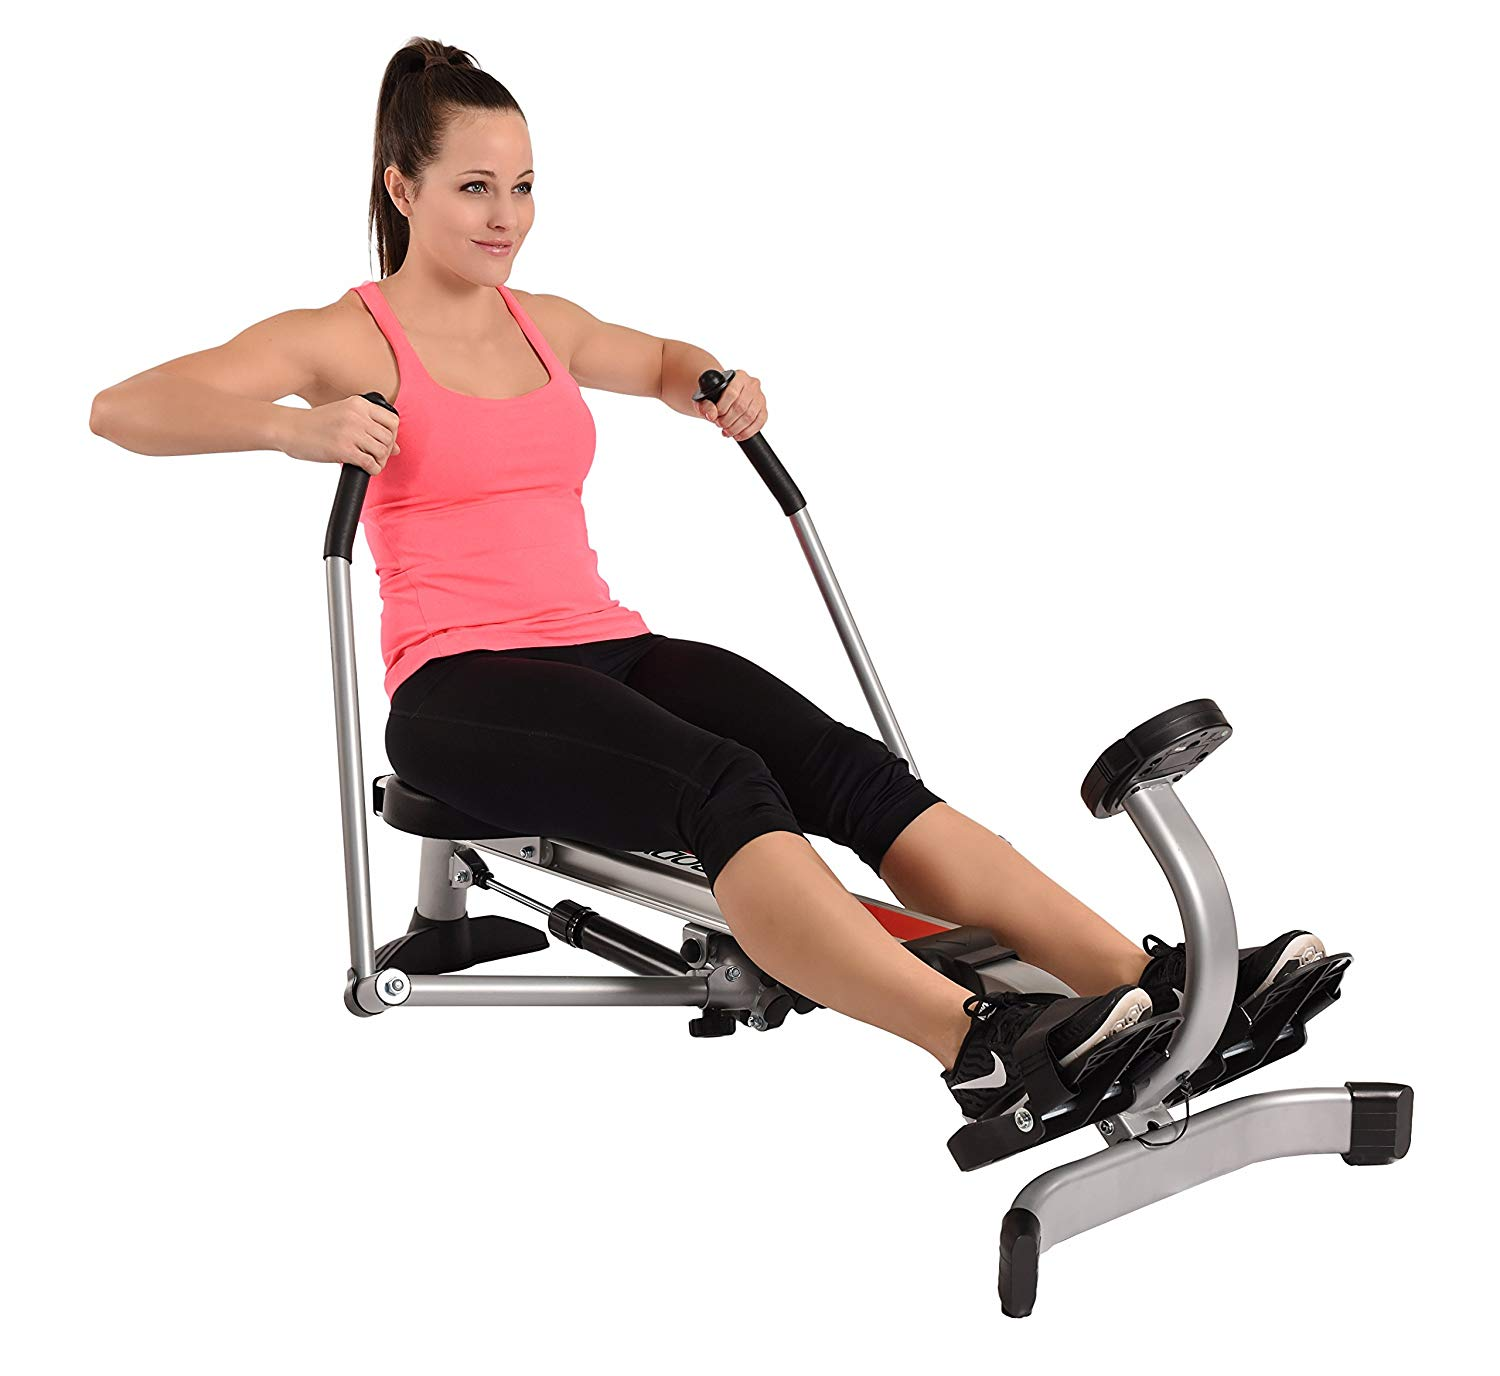 rowing exercise